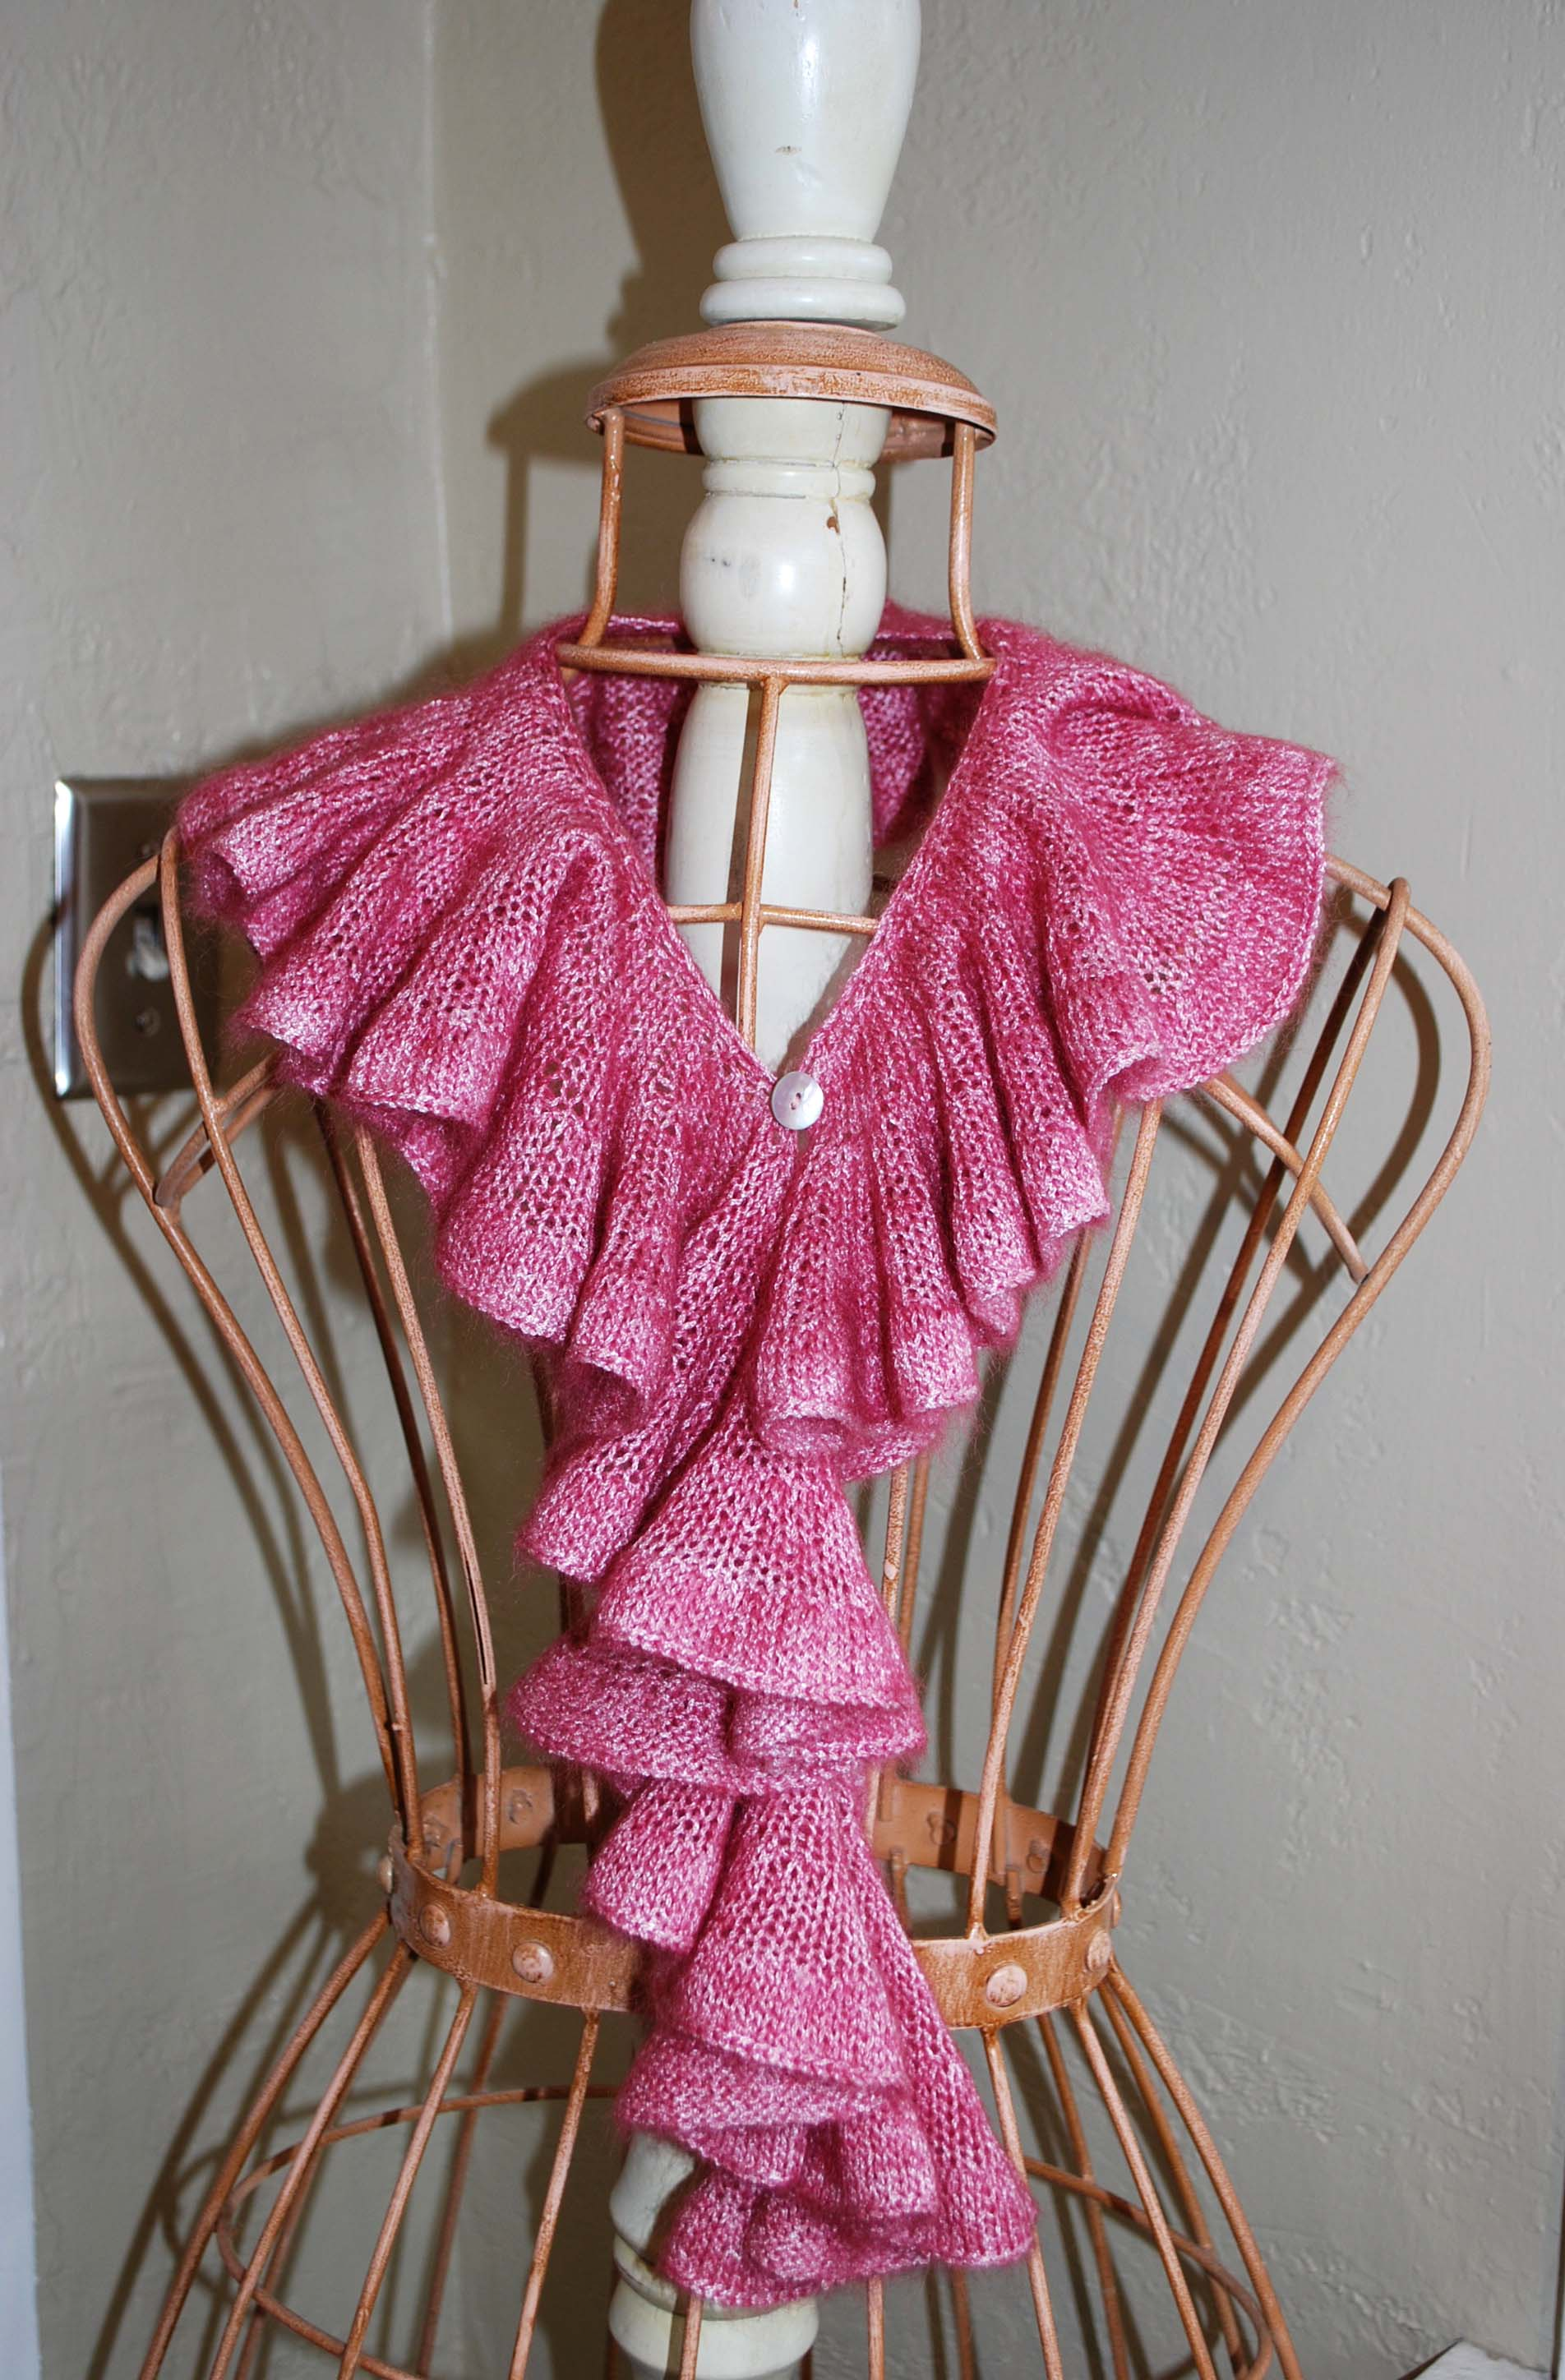 Ruffle Scarf - AllFreeCrochet.com - Free Crochet Patterns, Crochet